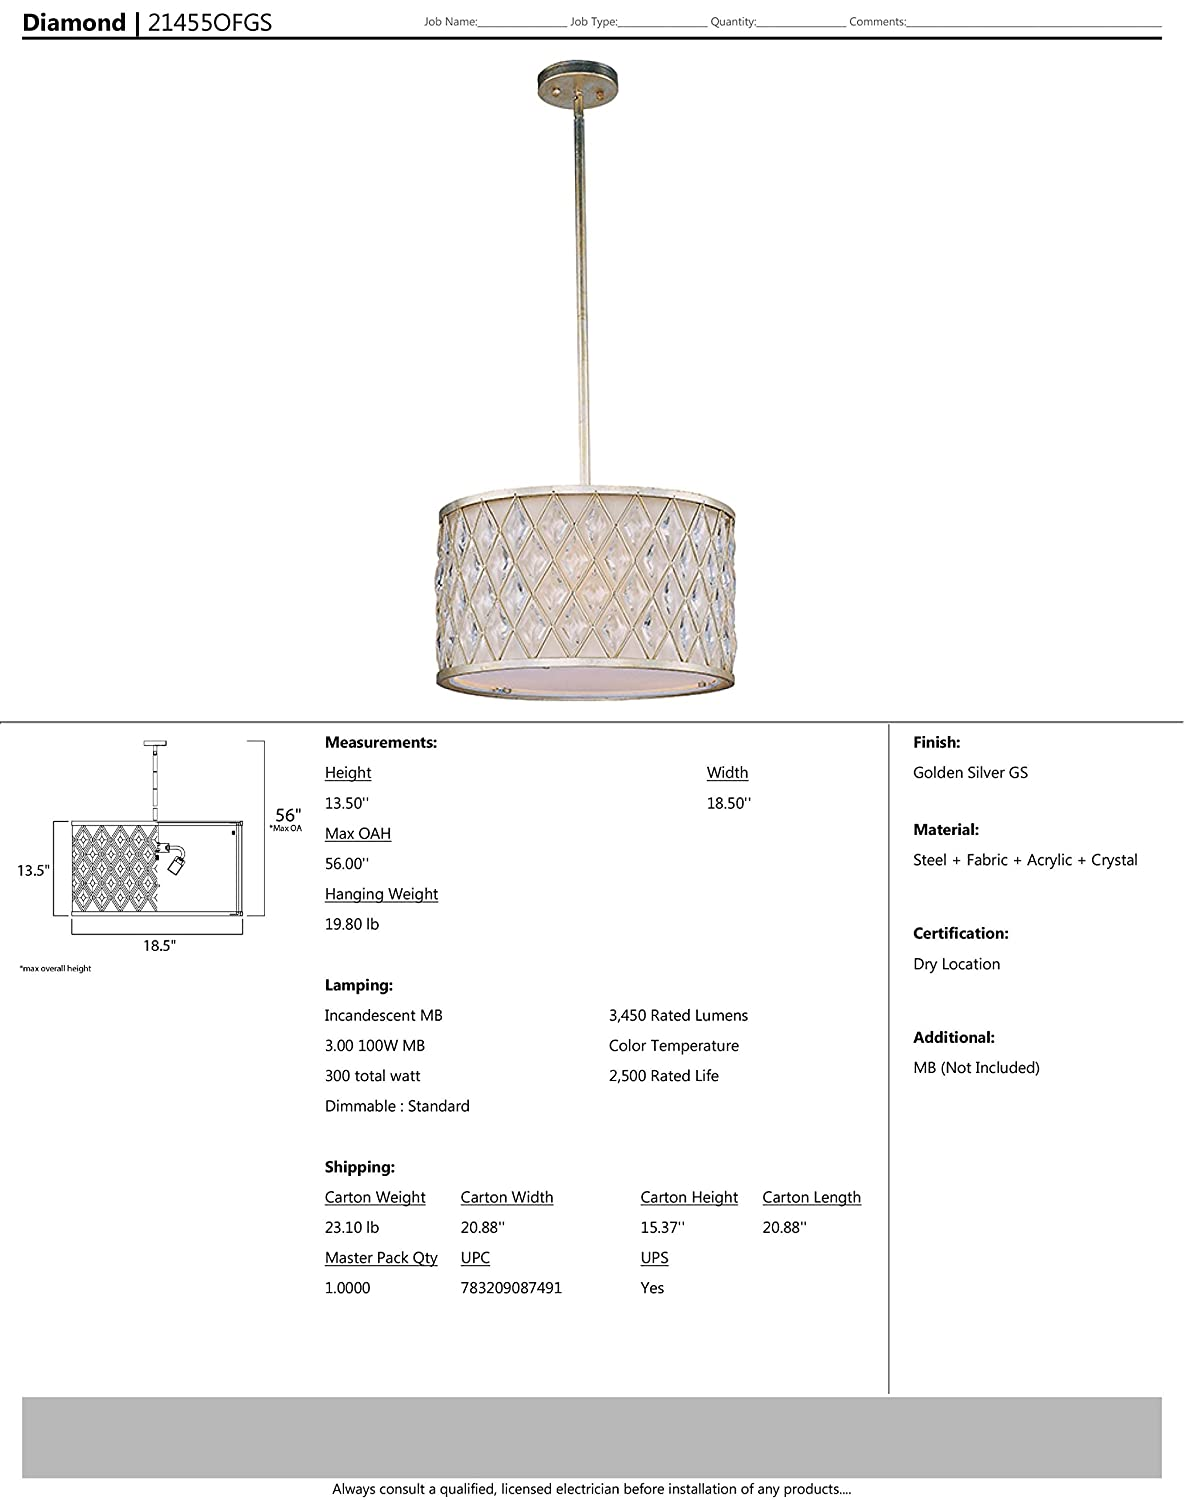 Damp Safety Rating Golden Silver Finish 3450 Rated Lumens MB Incandescent Incandescent Bulb Glass Shade Material Standard Dimmable Maxim 21455OFGS Diamond 3-Light Pendant Glass 100W Max.